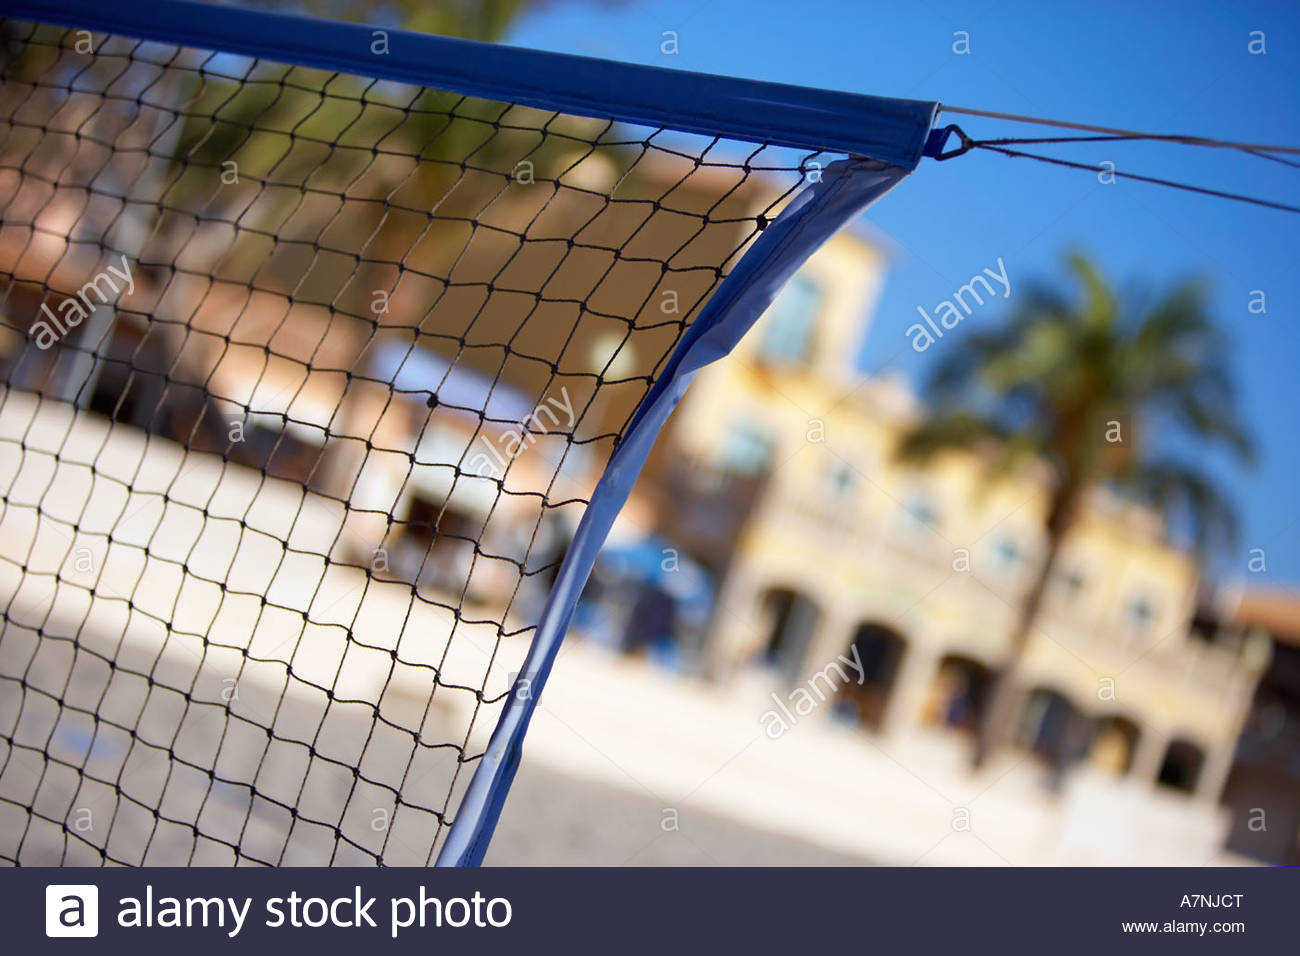 Sports net close up palm tree and building in background focus on foreground tilt - Stock Image